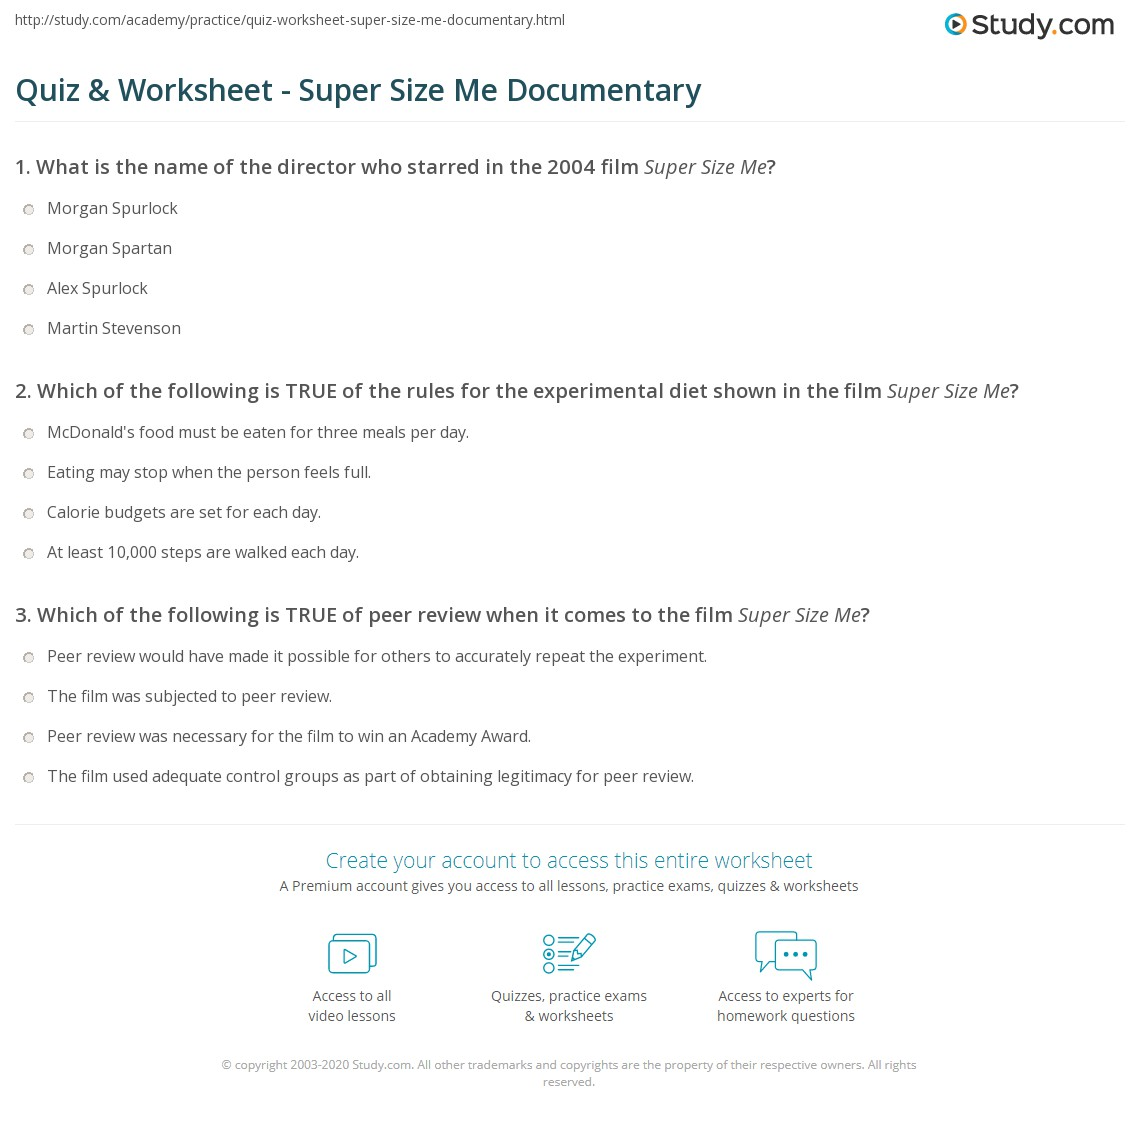 Worksheets Supersize Me Worksheet Answers quiz worksheet super size me documentary study com print movie facts summary worksheet